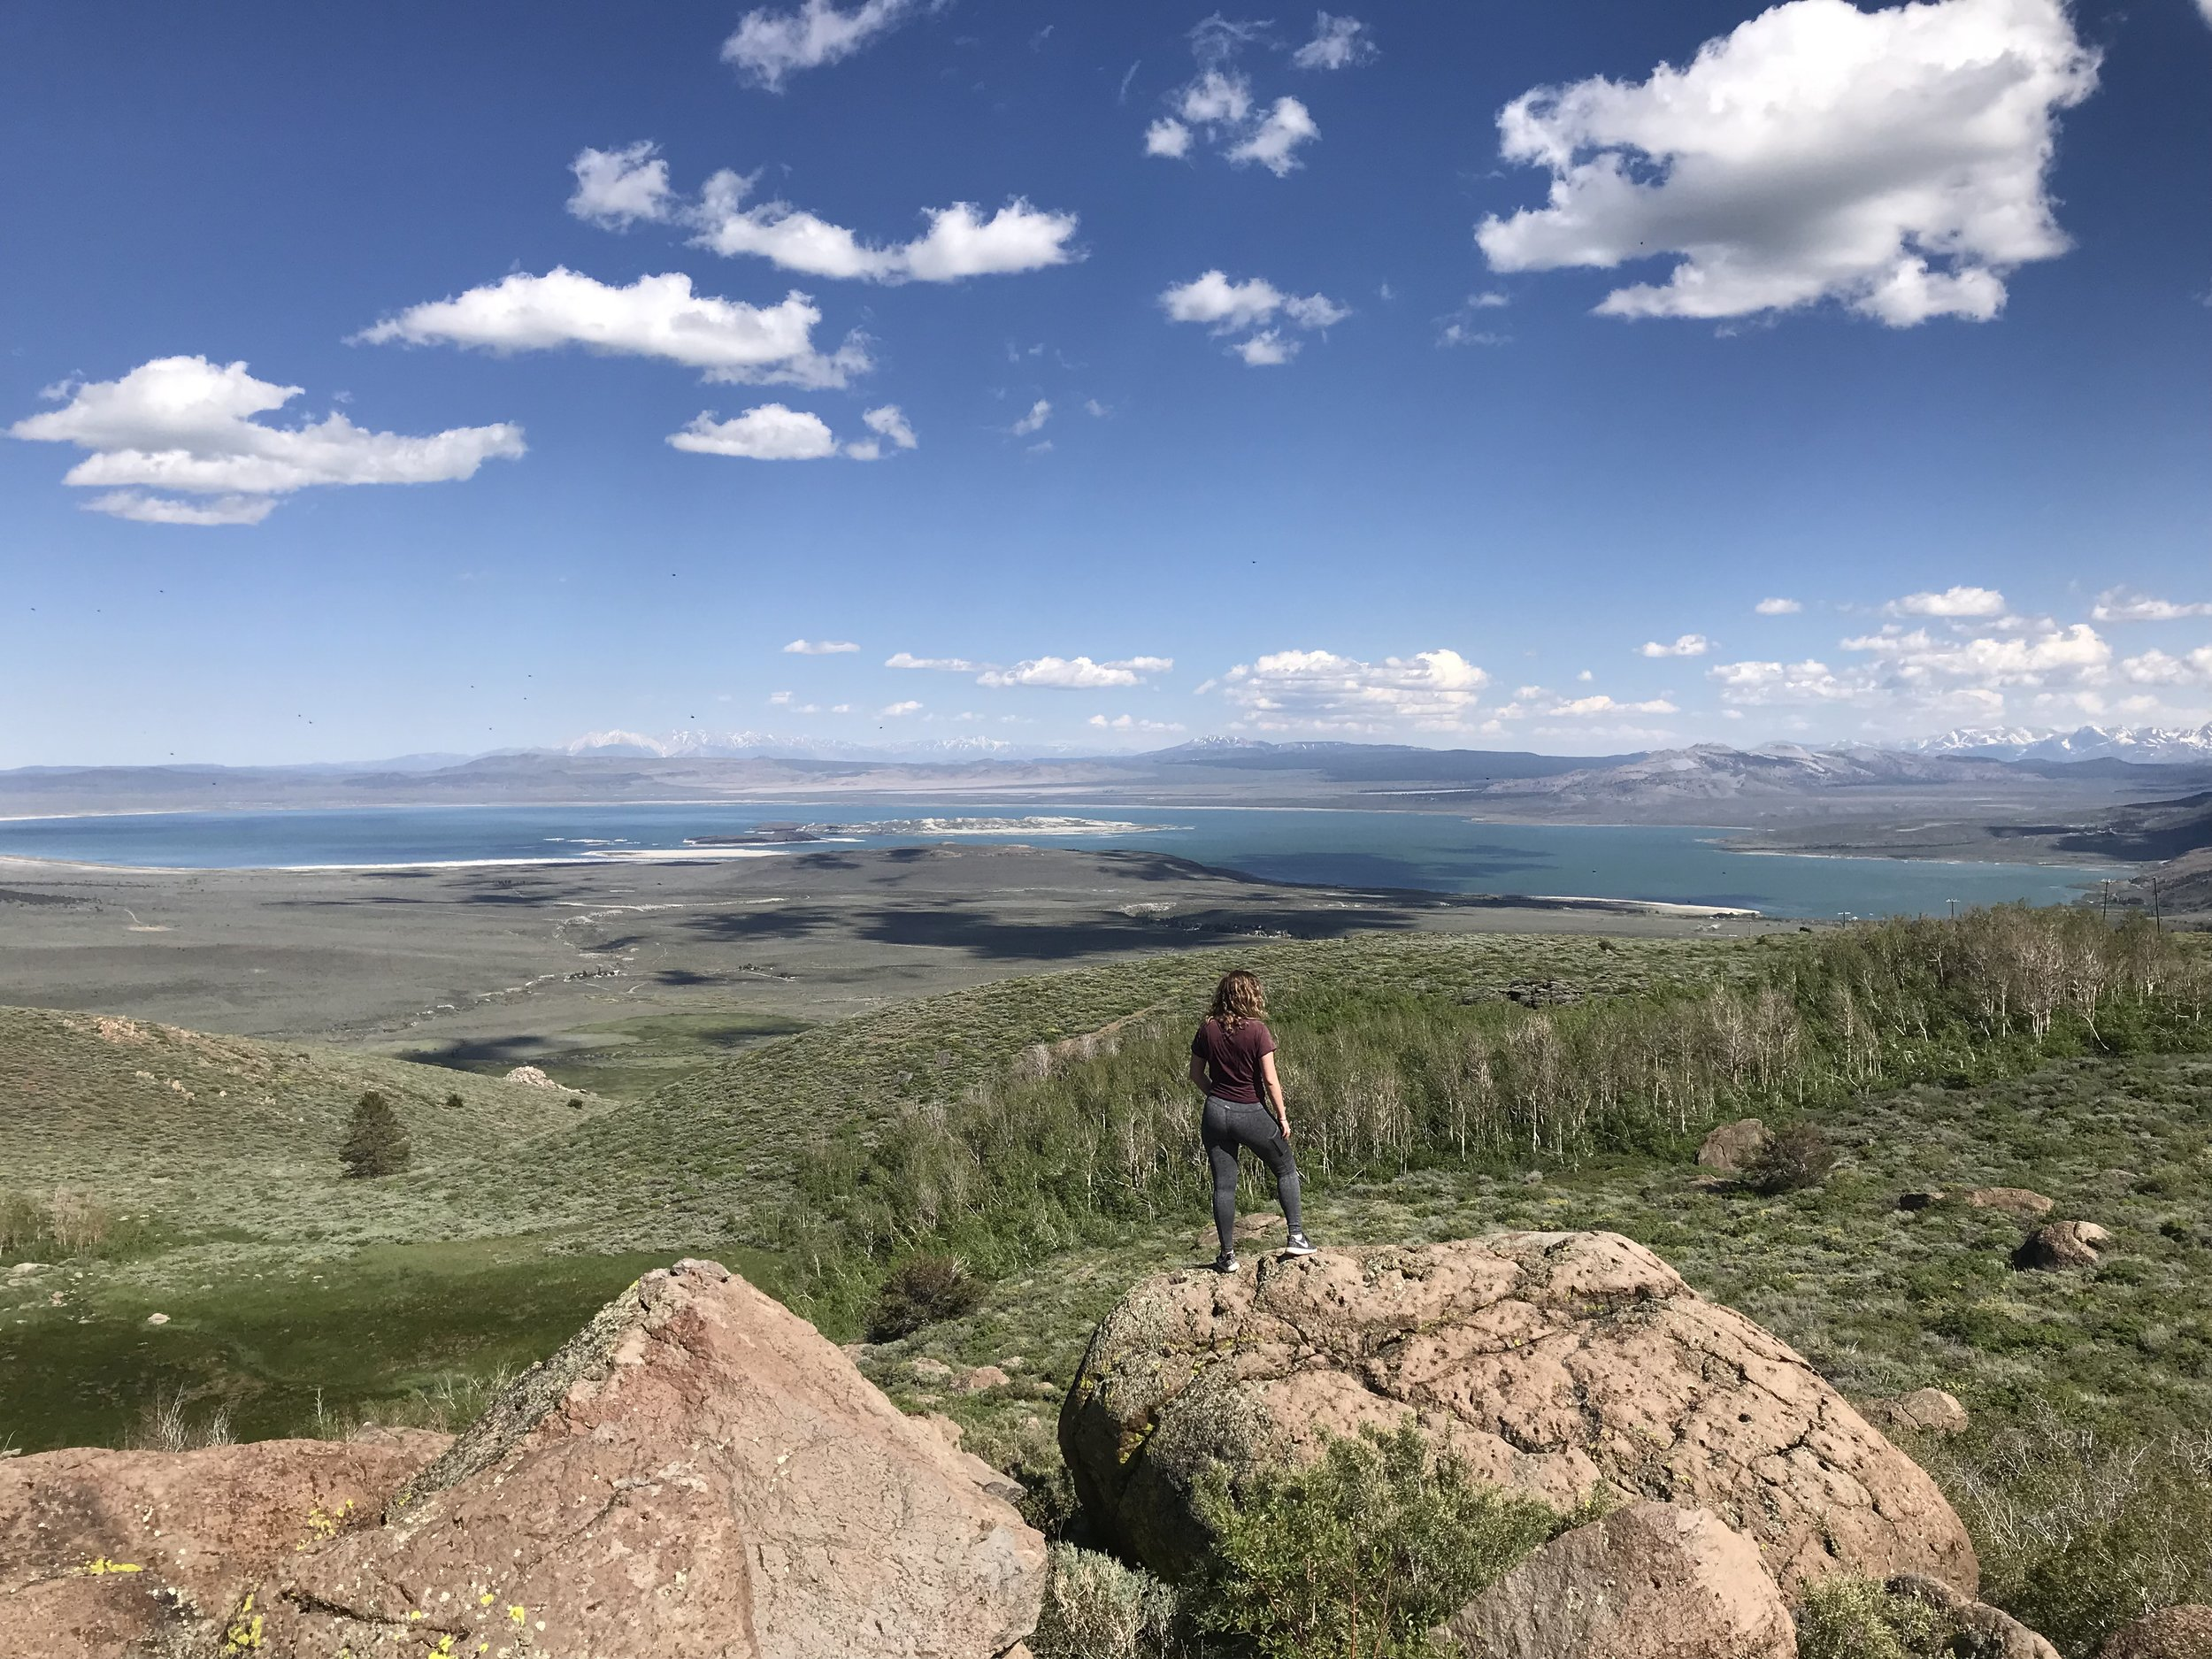 MONO LAKE VIEW FROM ABOVE